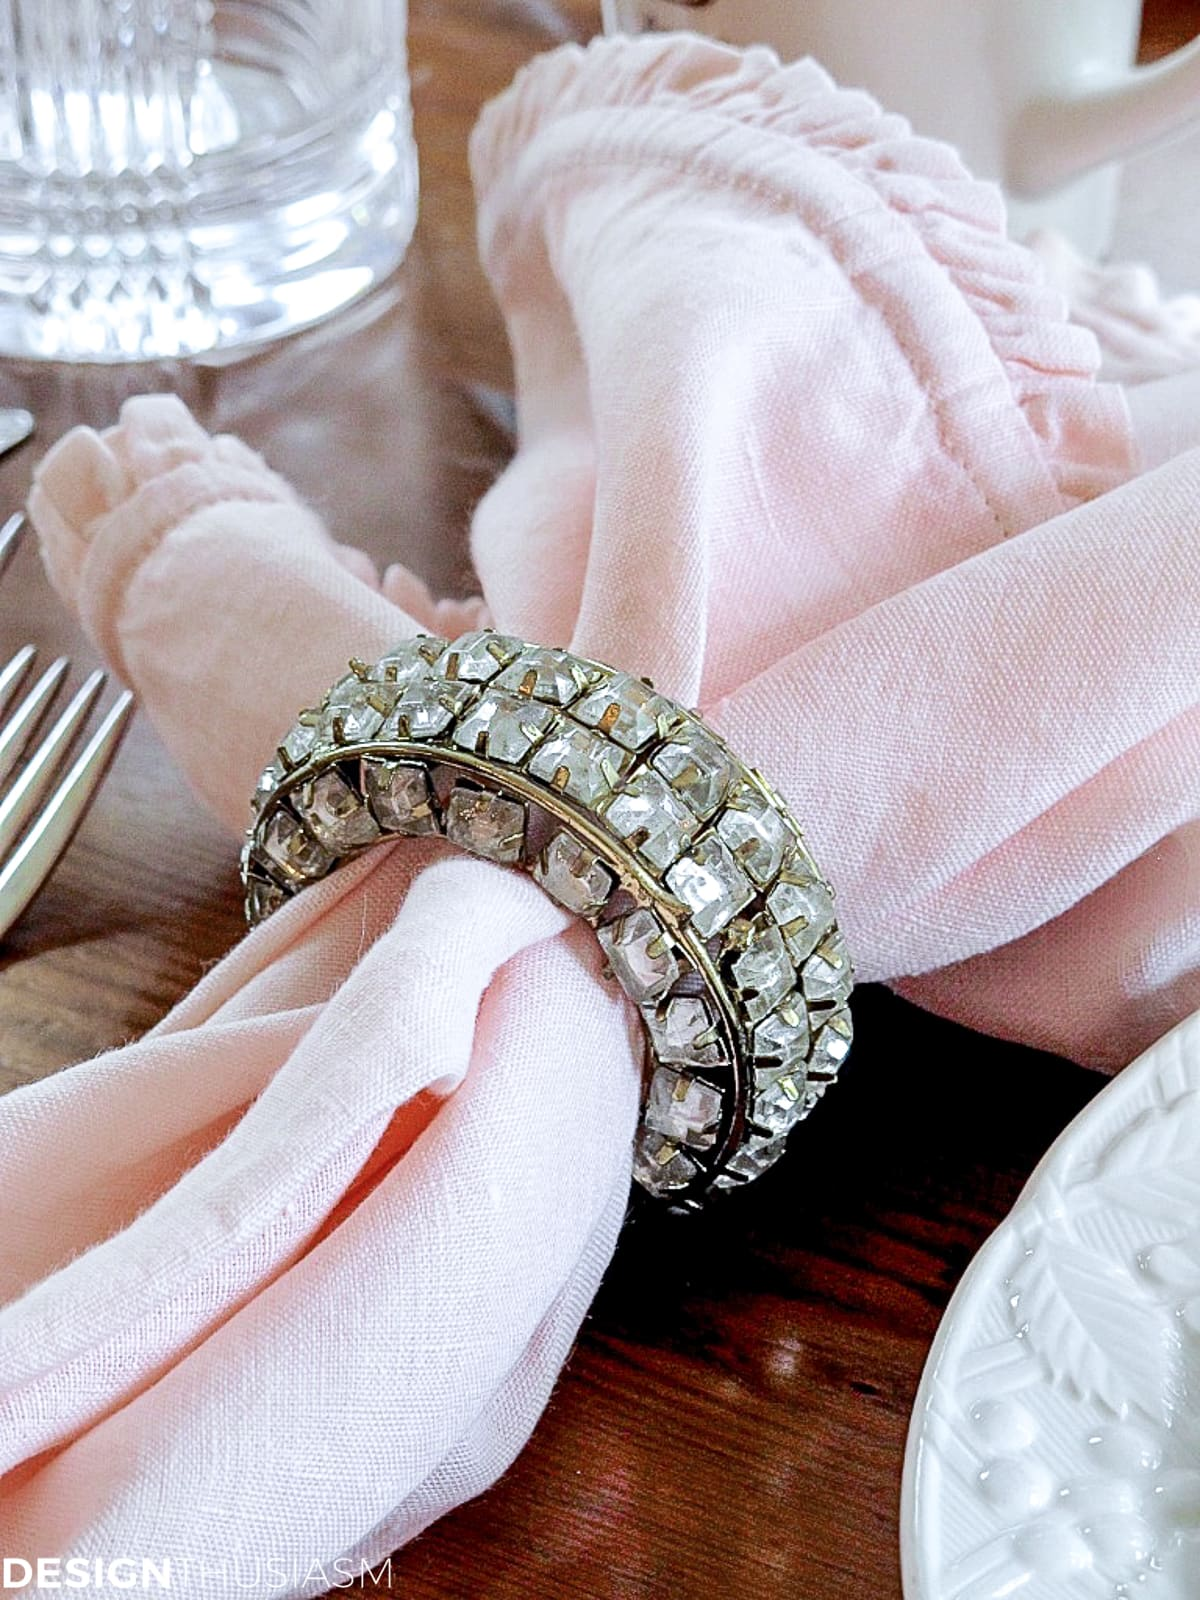 napkin and ring for table setting for lunch